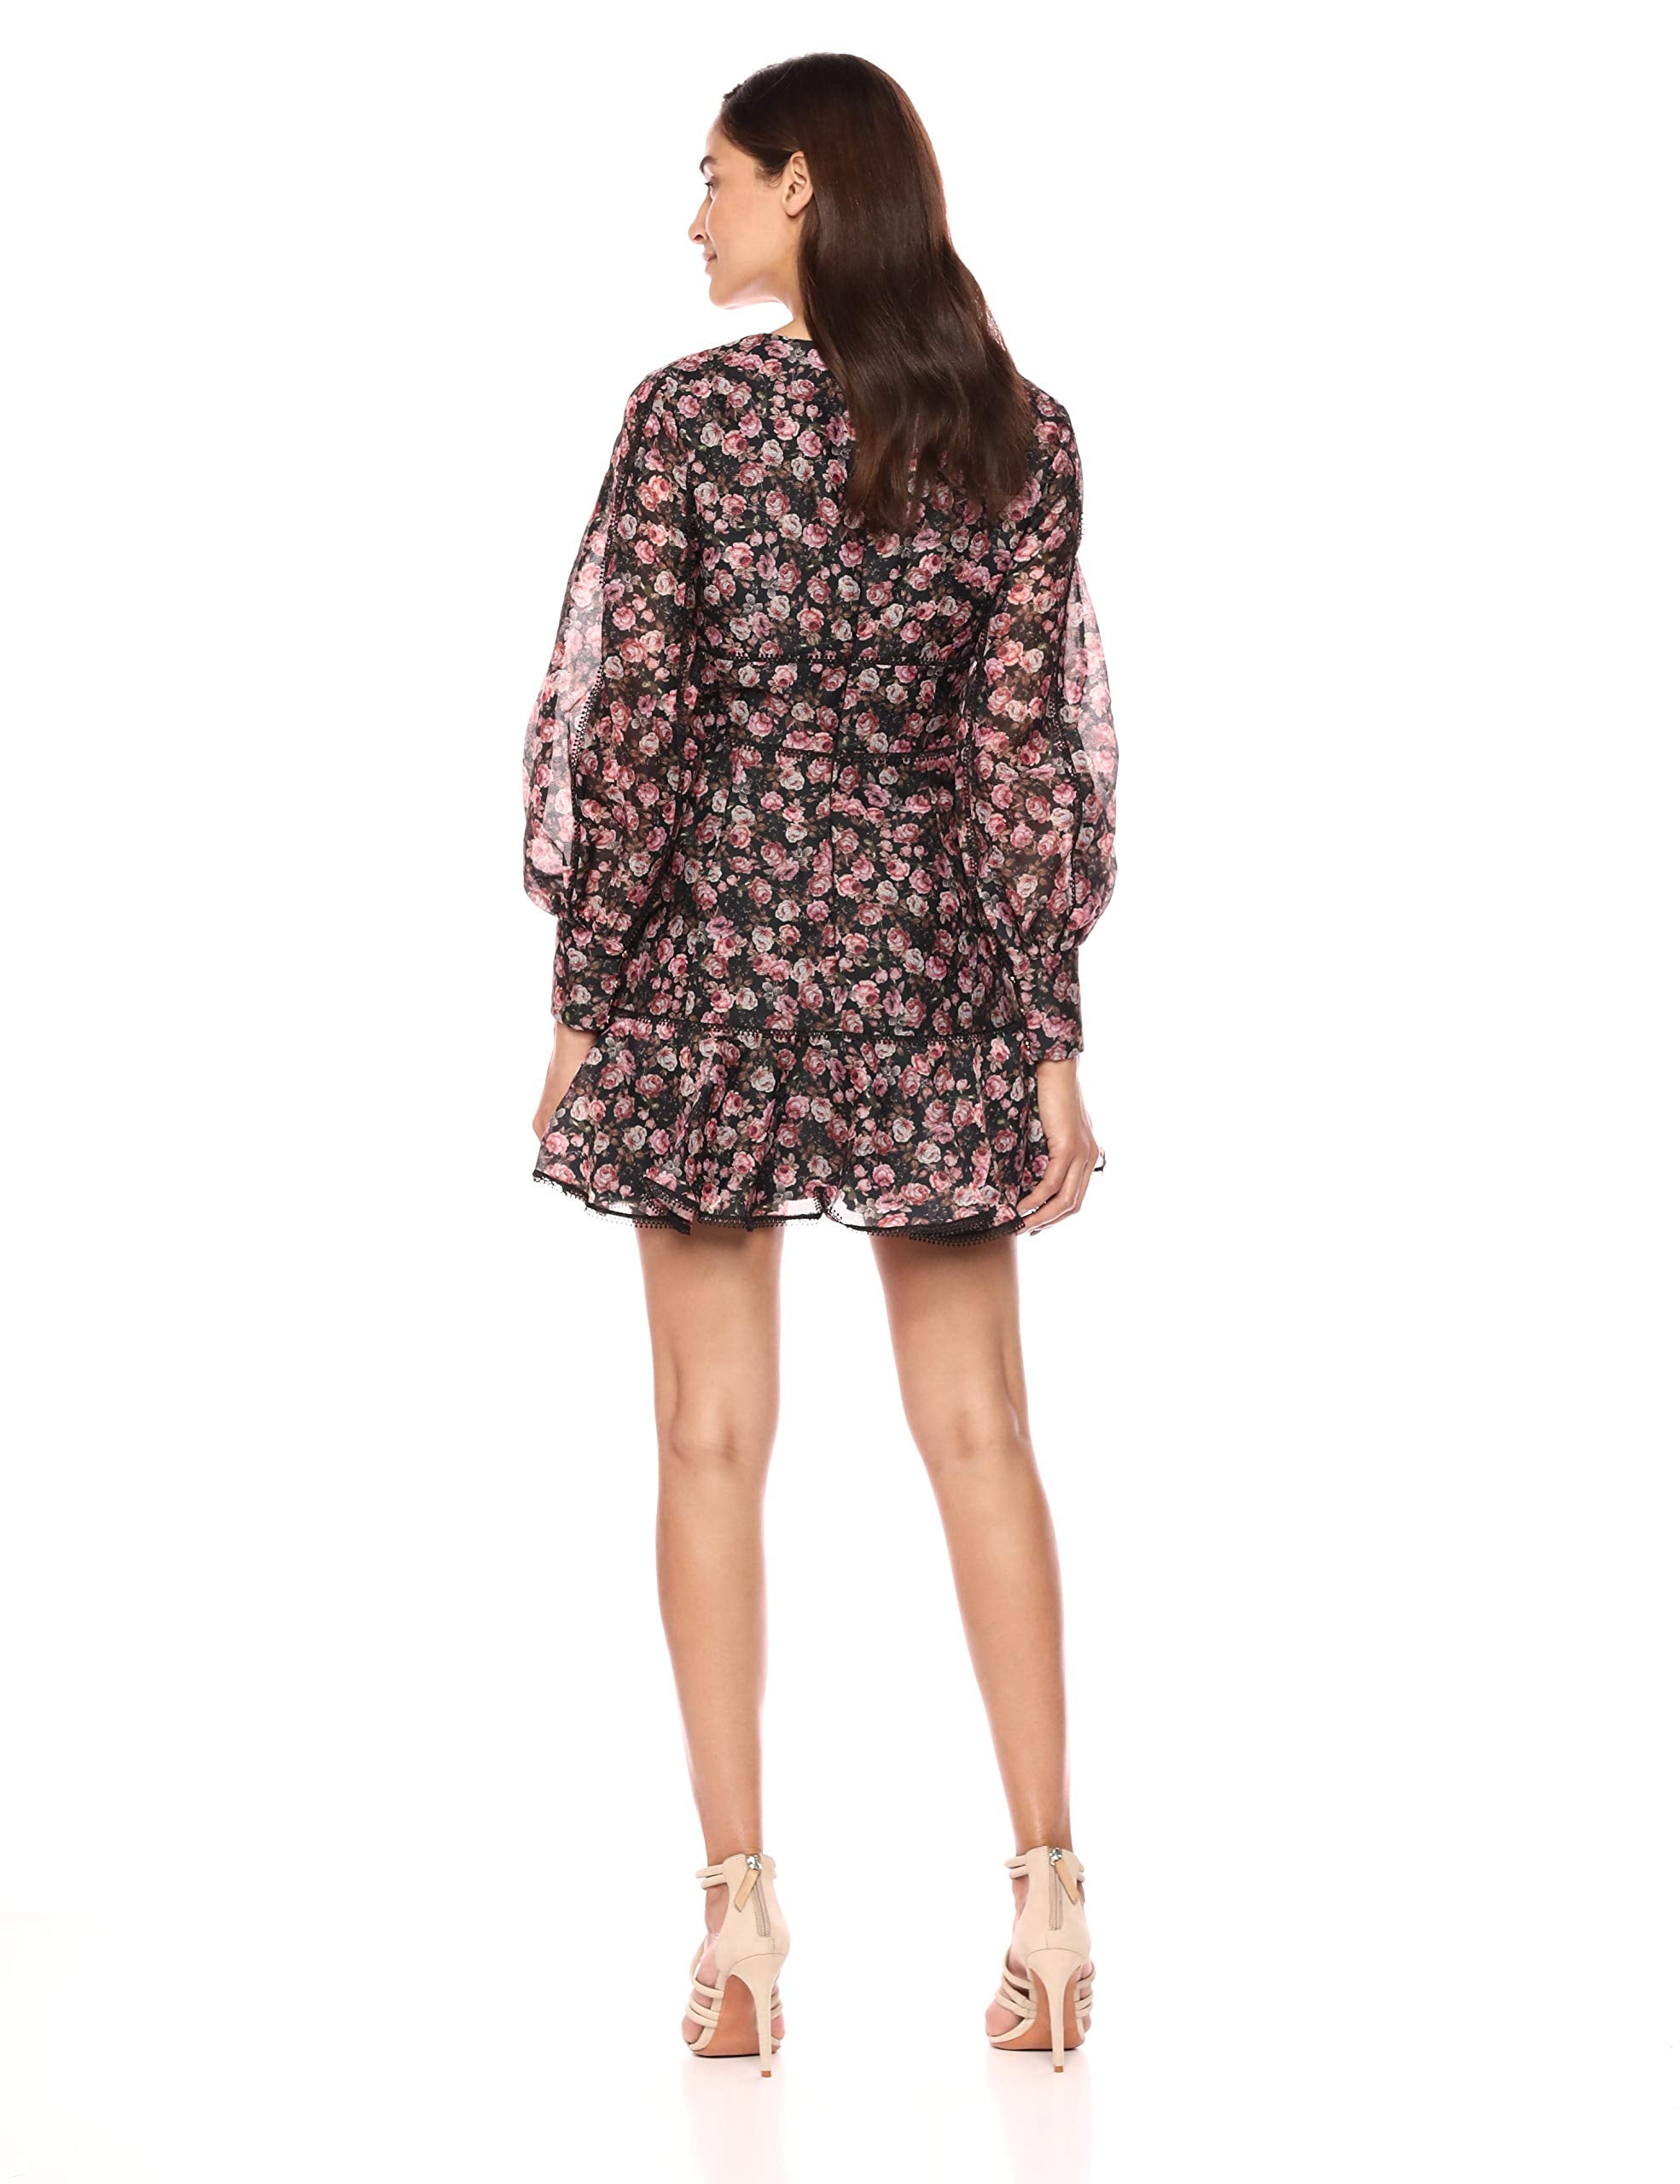 Keepsake The Label Women's ONE Love Puff Sleeve FIT & Flare Floral Longsleeve Dress, Black Rose, L - wiihuu